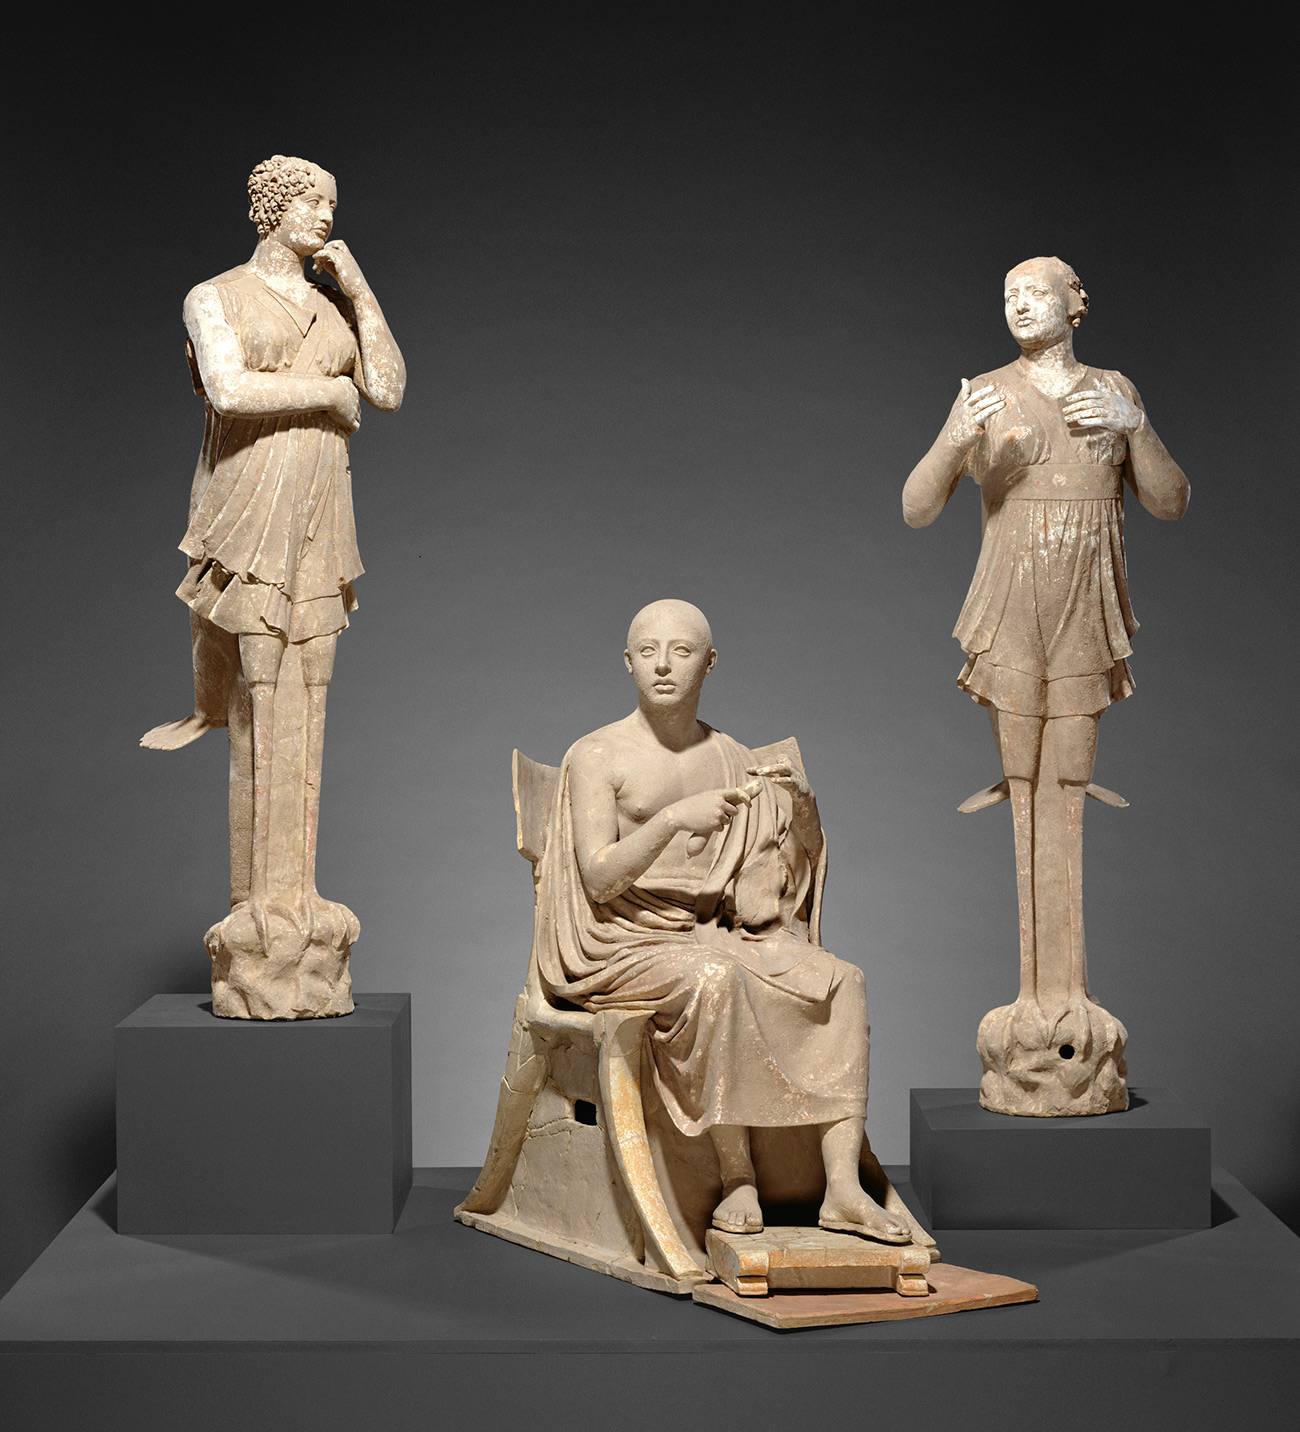 Life-size terracotta figure of a poet seated on a throne and flanked by two women with wings and the claws of birds